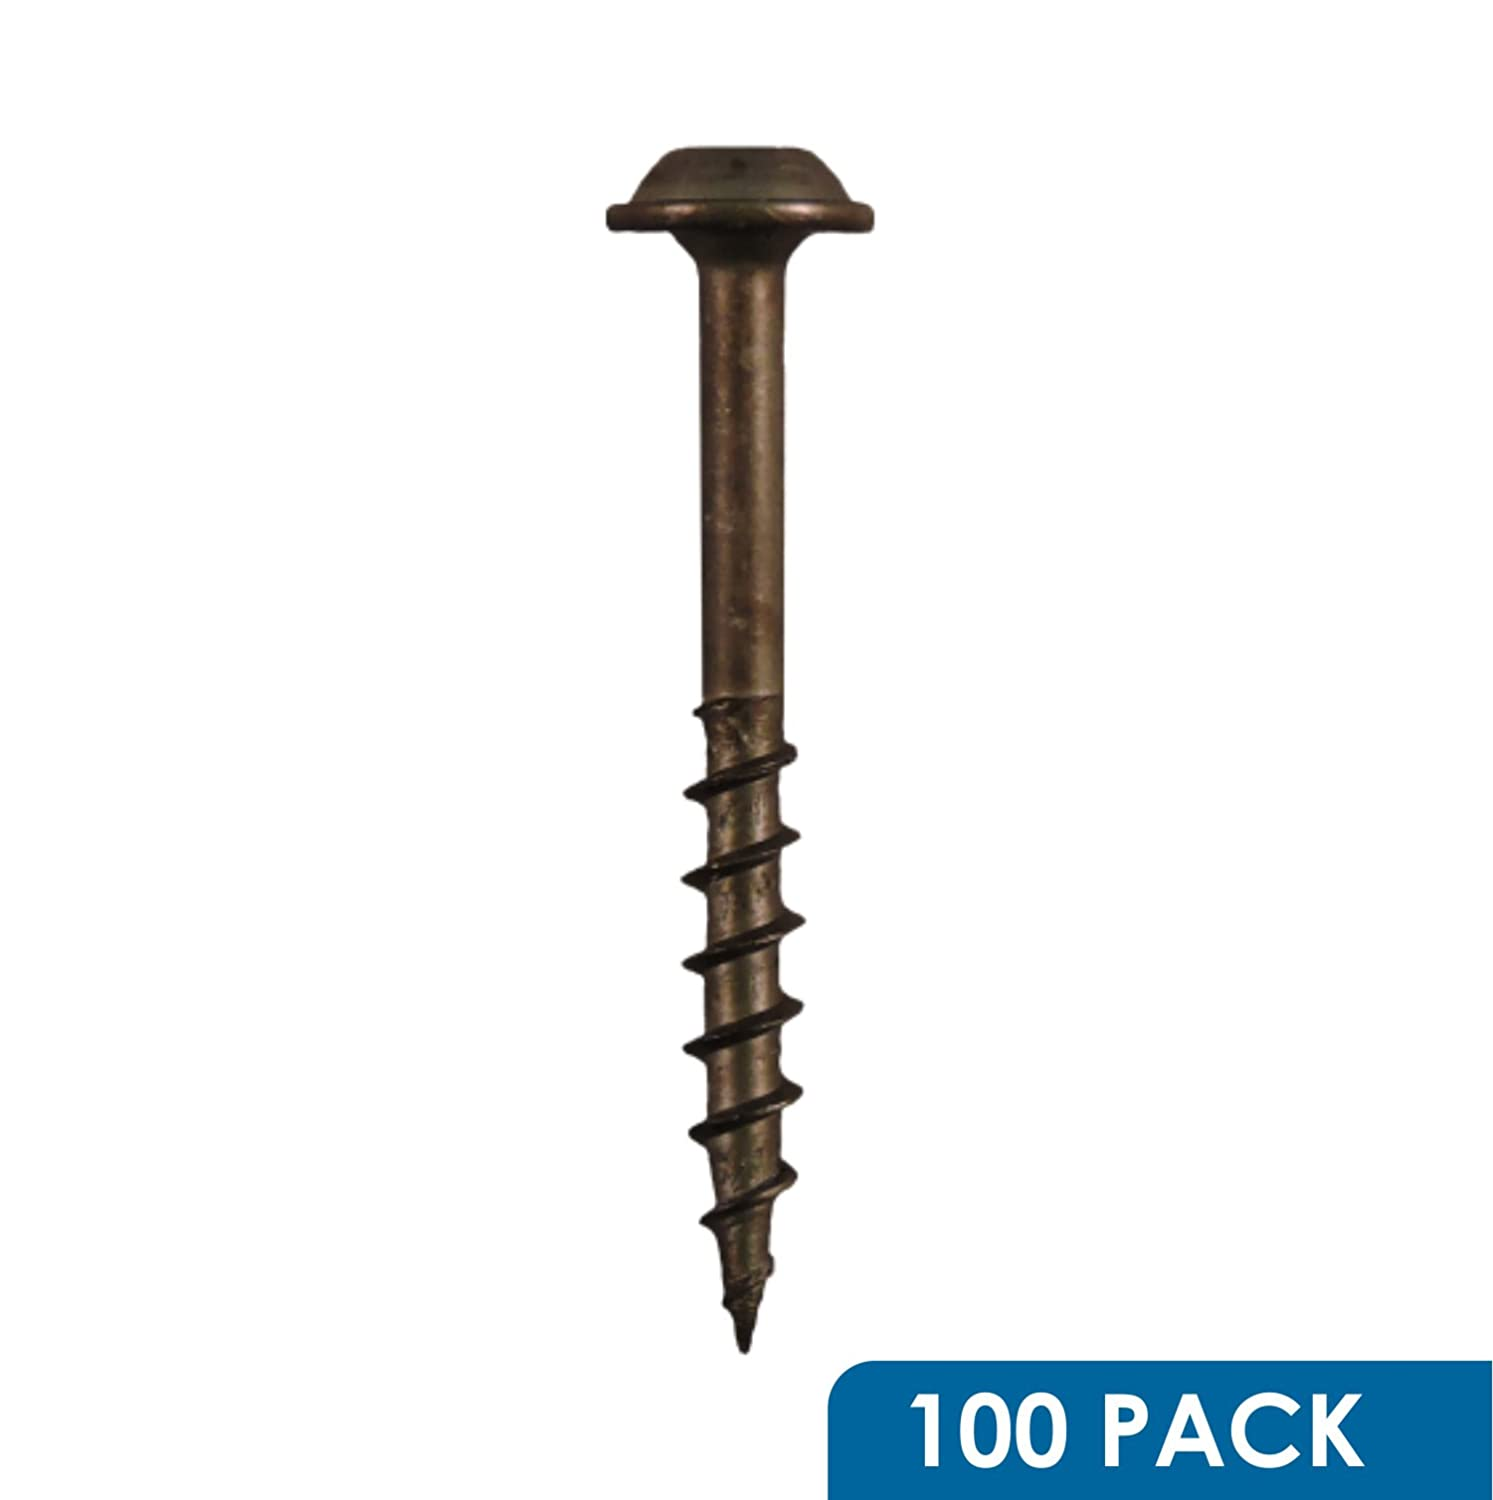 Rok Hardware #8 x 1 Pocket Hole Deck Screws Square Drive Round Washer Head Wood Deep Coarse 100 Pack S8X1WSQCS-100